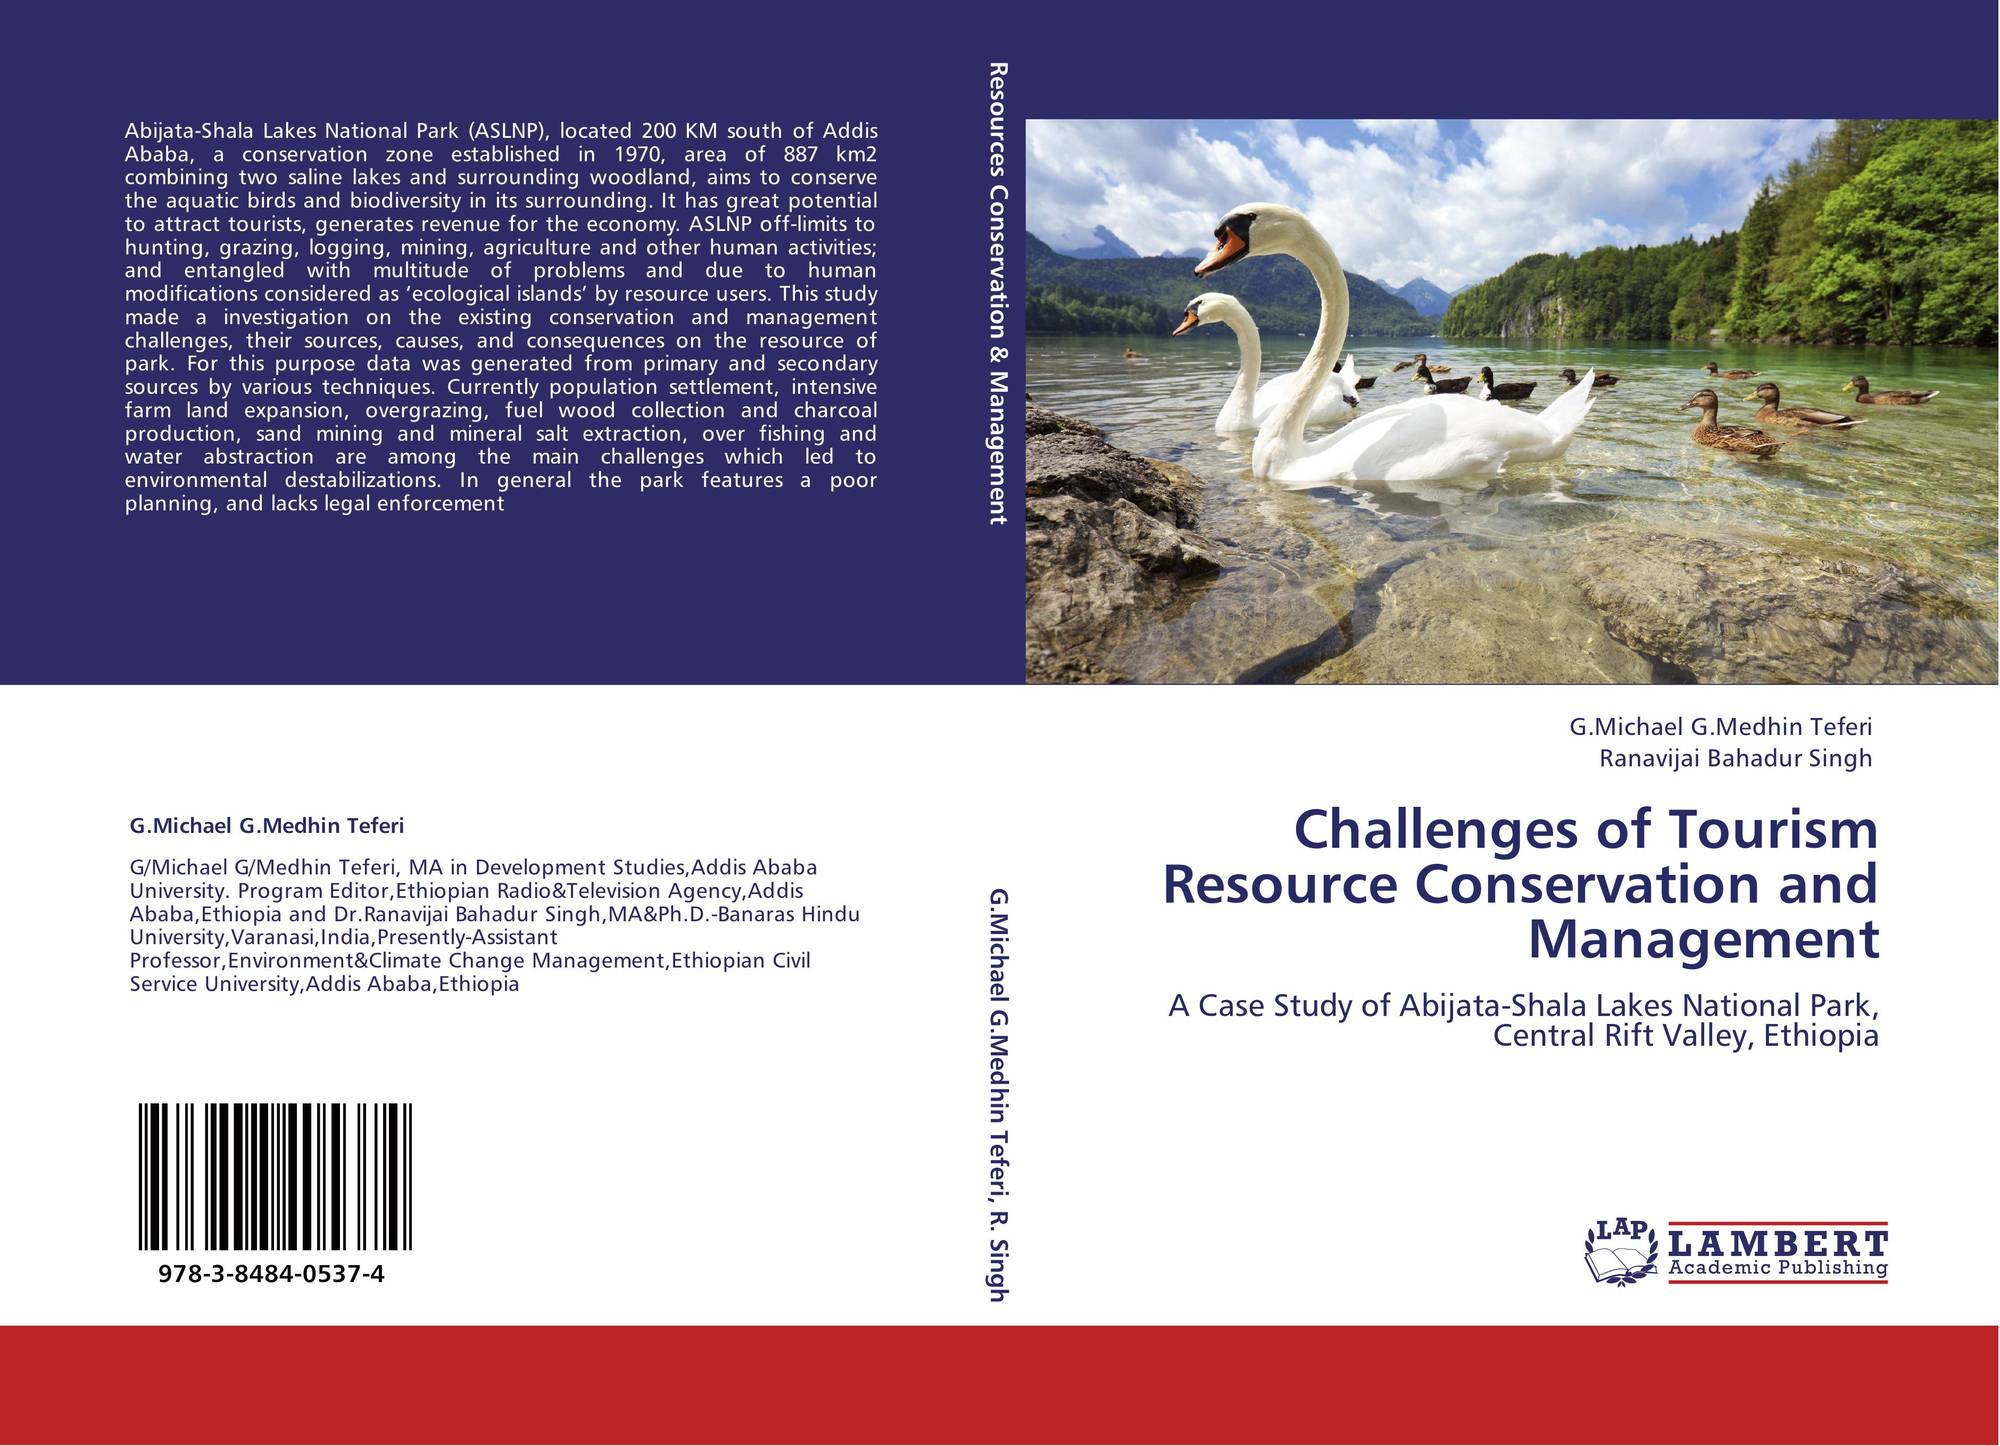 Challenges of Tourism Resource Conservation and Management, 978-3